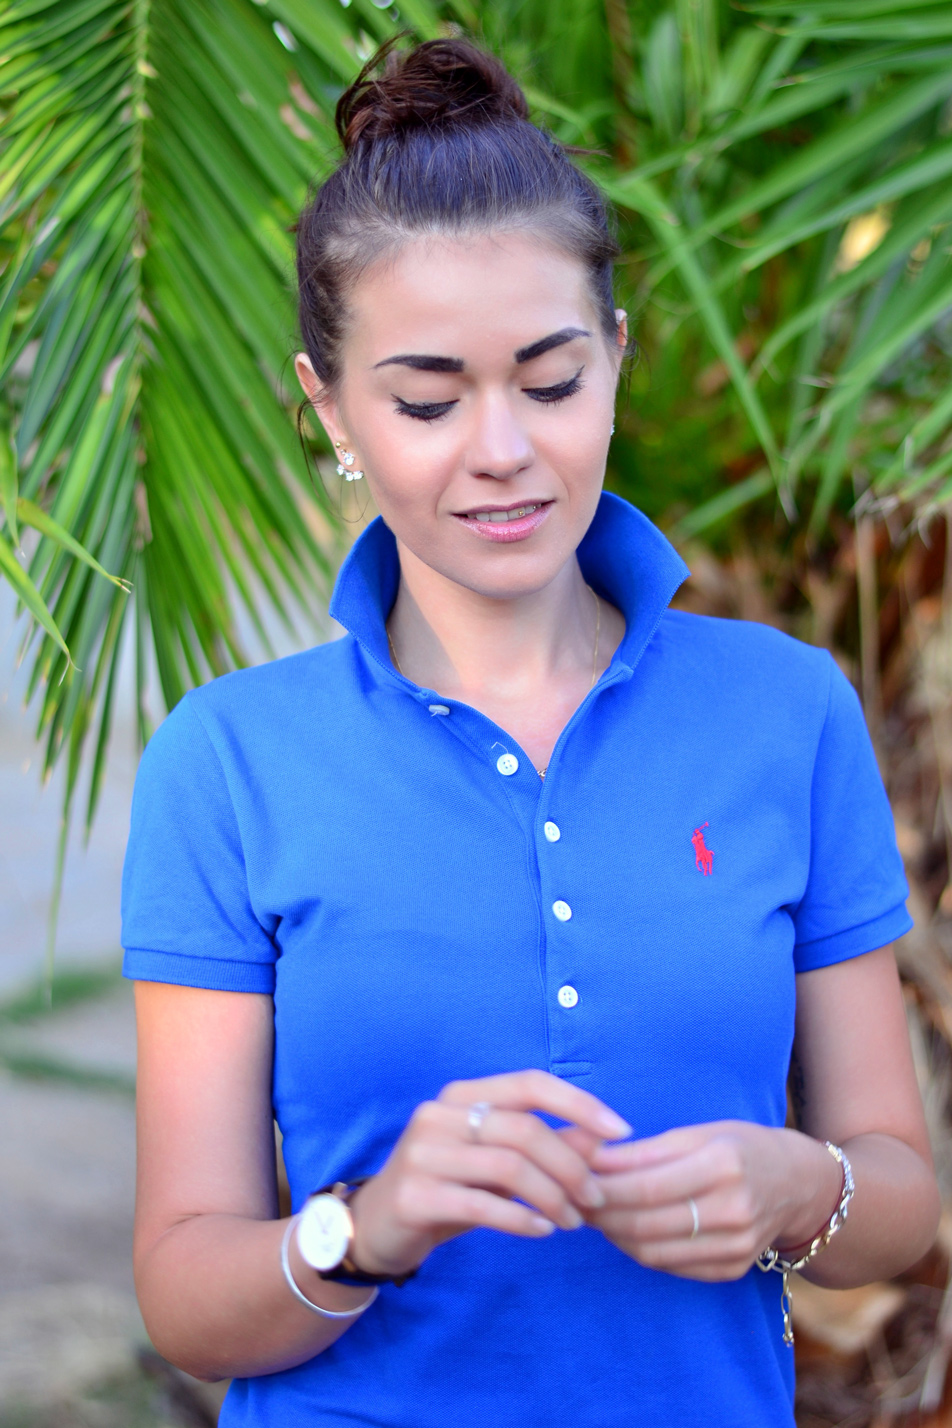 Ralph-Lauren-polo-shirt